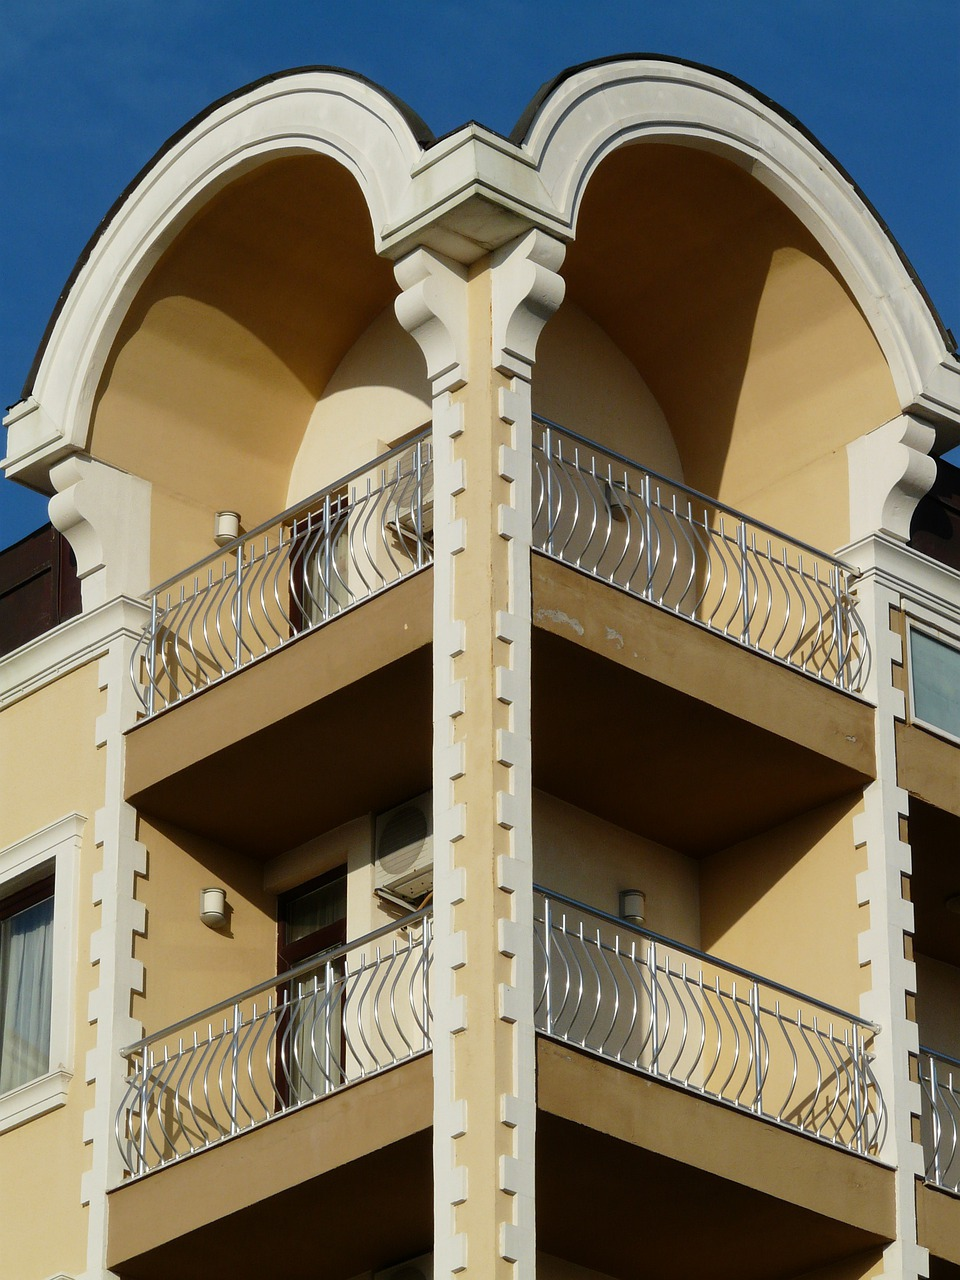 Free stock photos: balcony-home-building-architecture-grid-r.